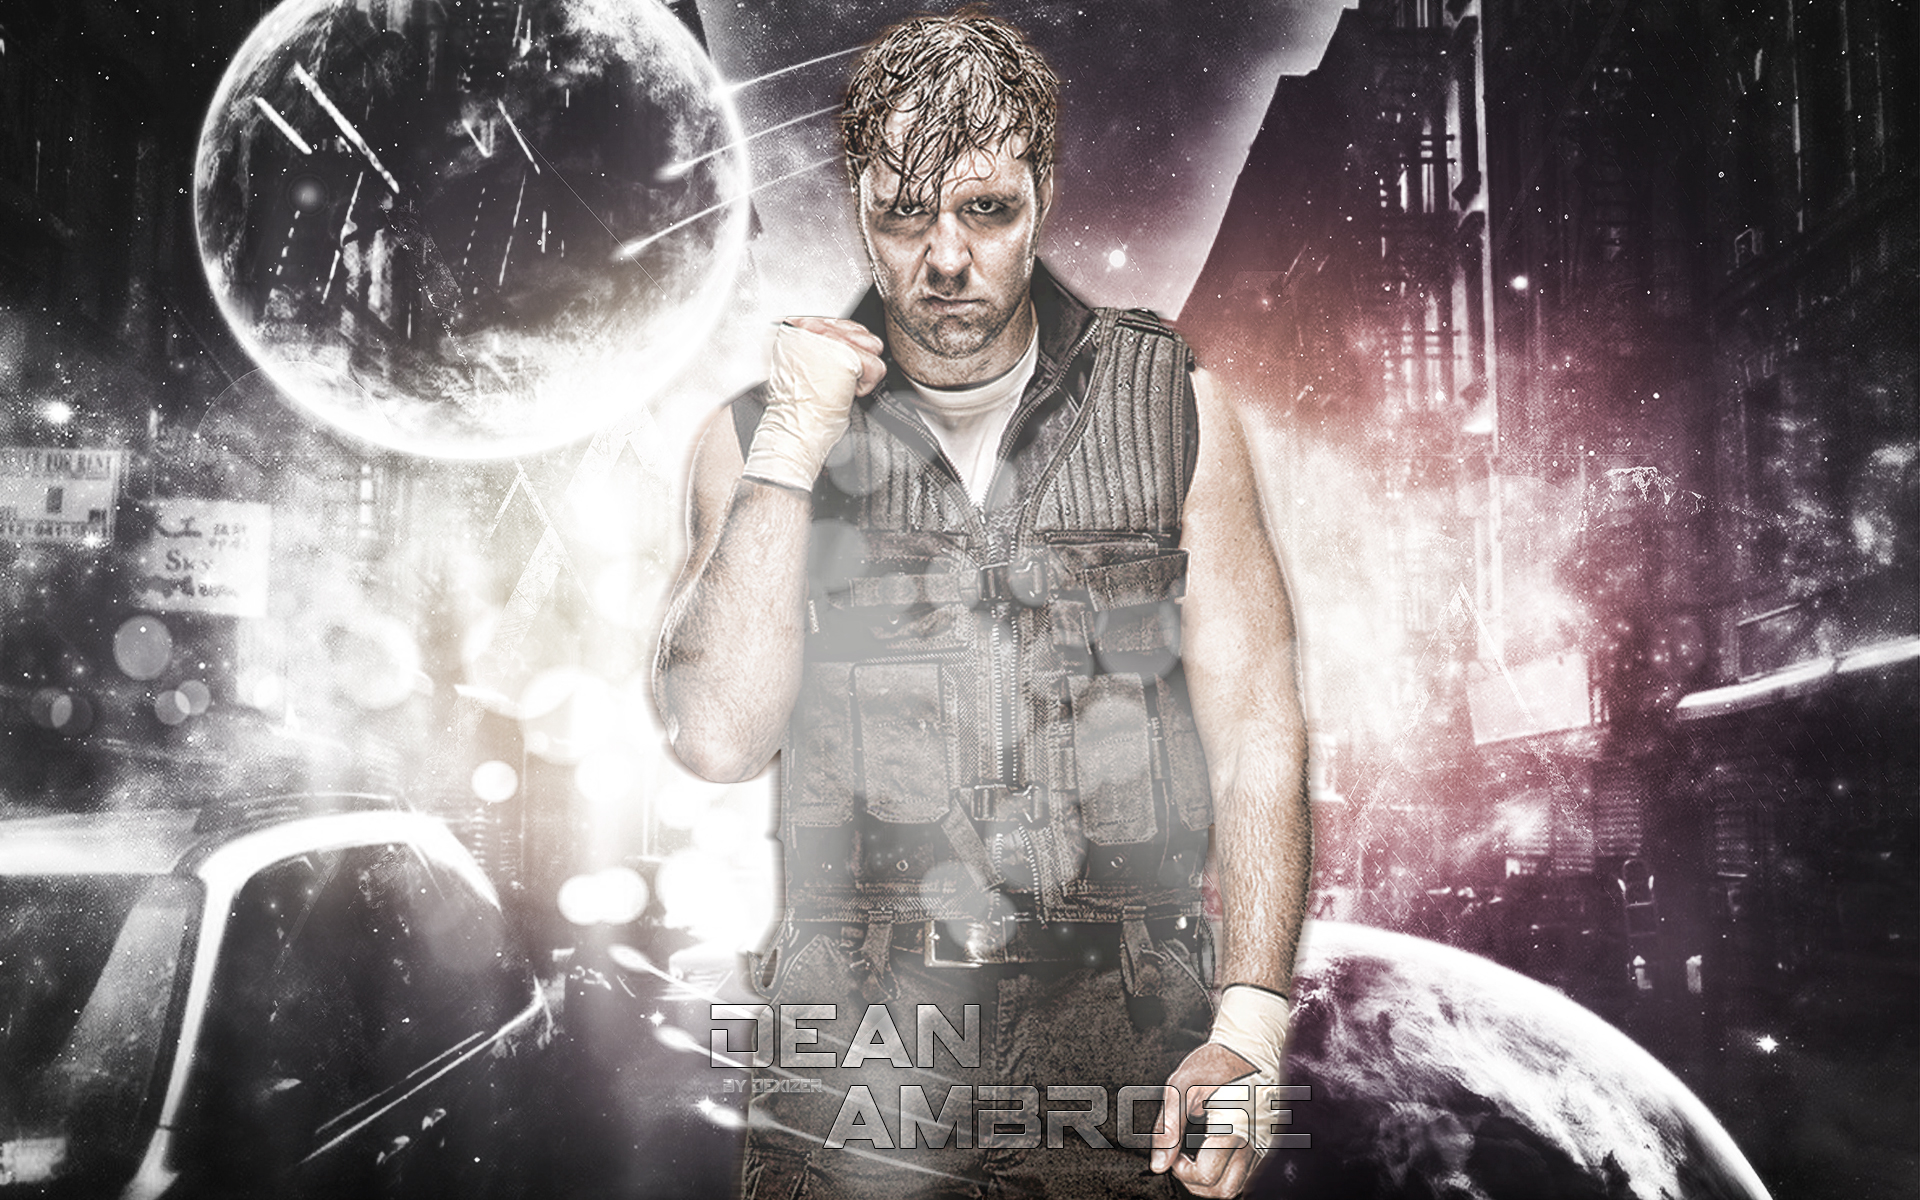 Hd Wallpapers Wwe Dean Ambrose 960 X 702 204 Kb Jpeg HD Wallpapers 1920x1200